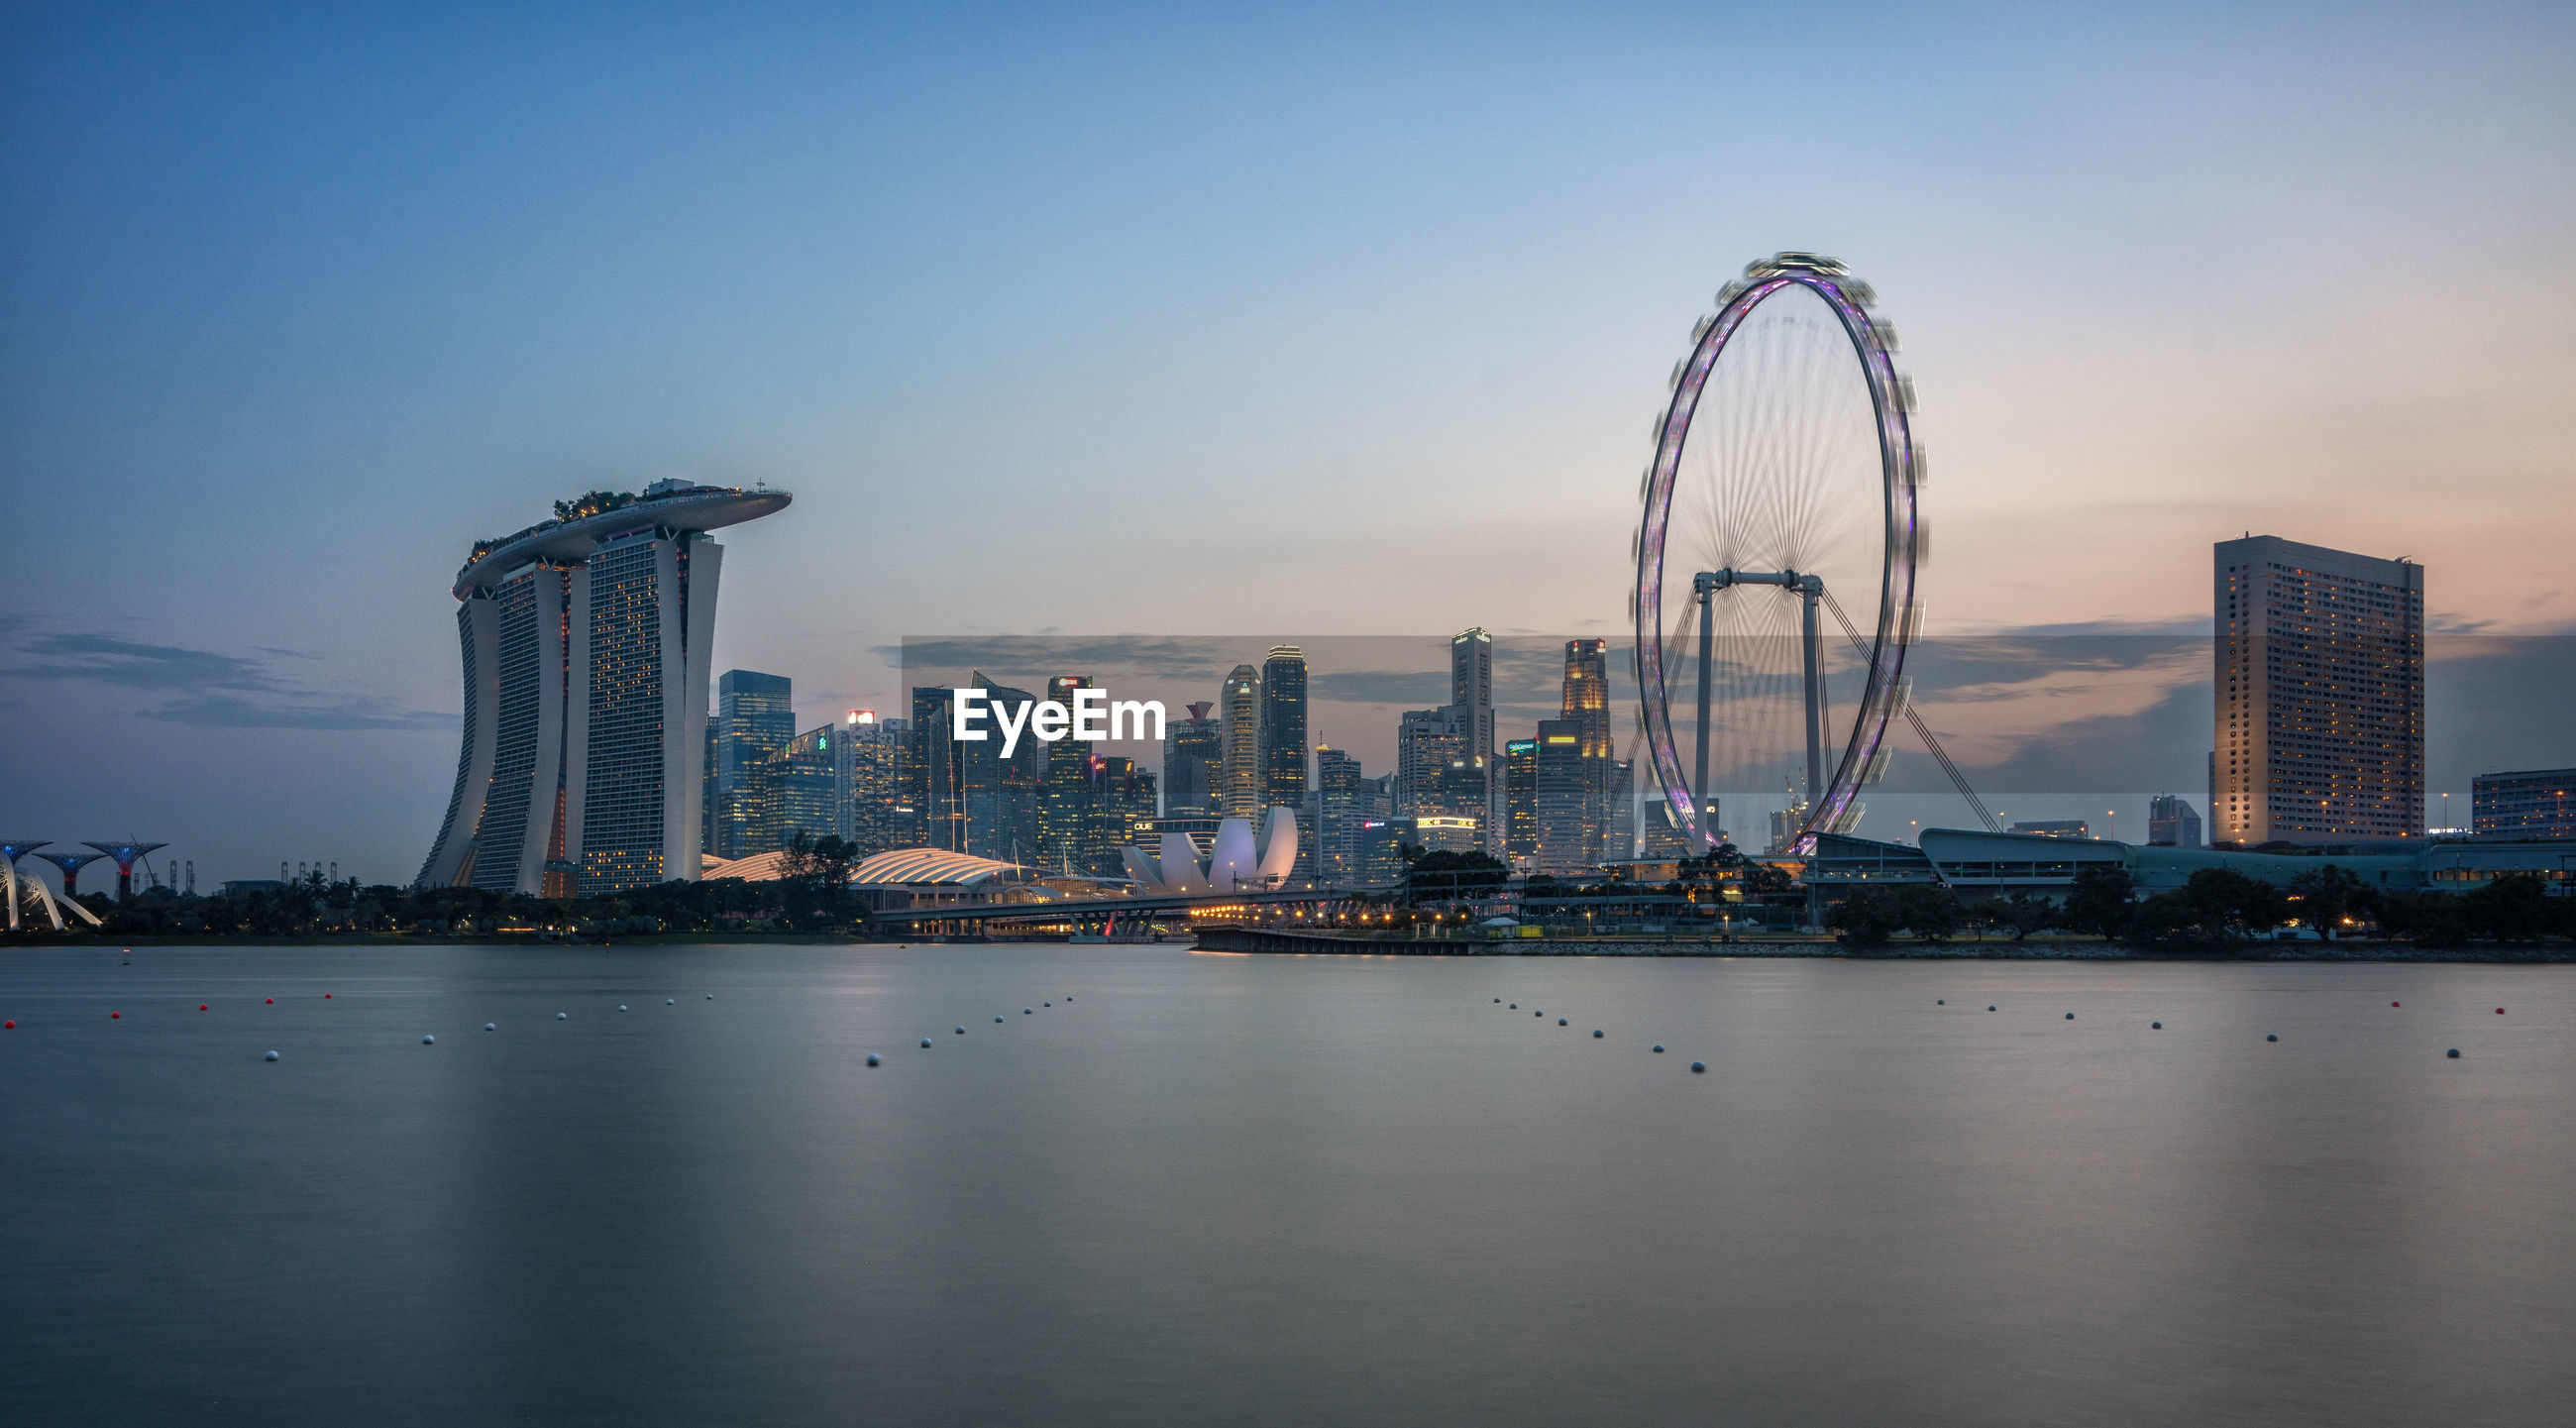 Marina bay sands by bay of water during sunset in city